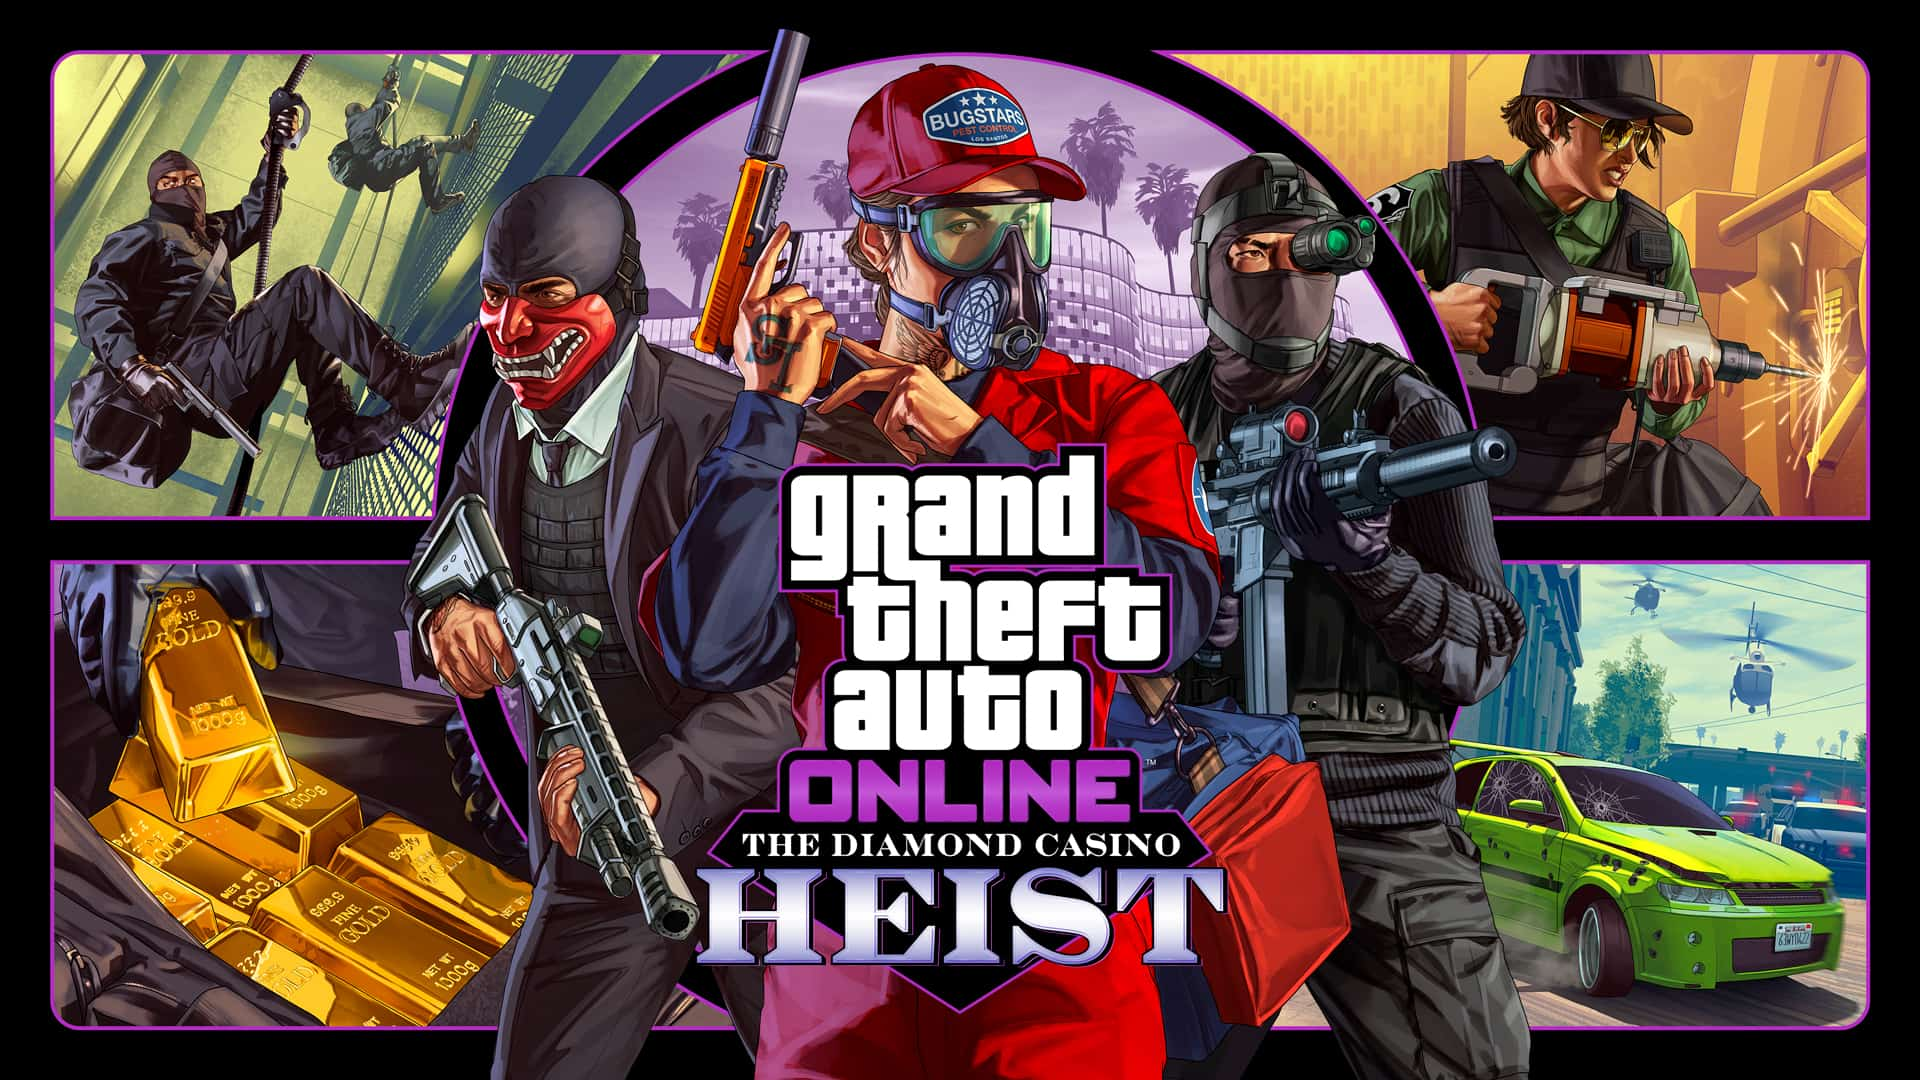 GTA Online The Diamond Casino عملية سطو